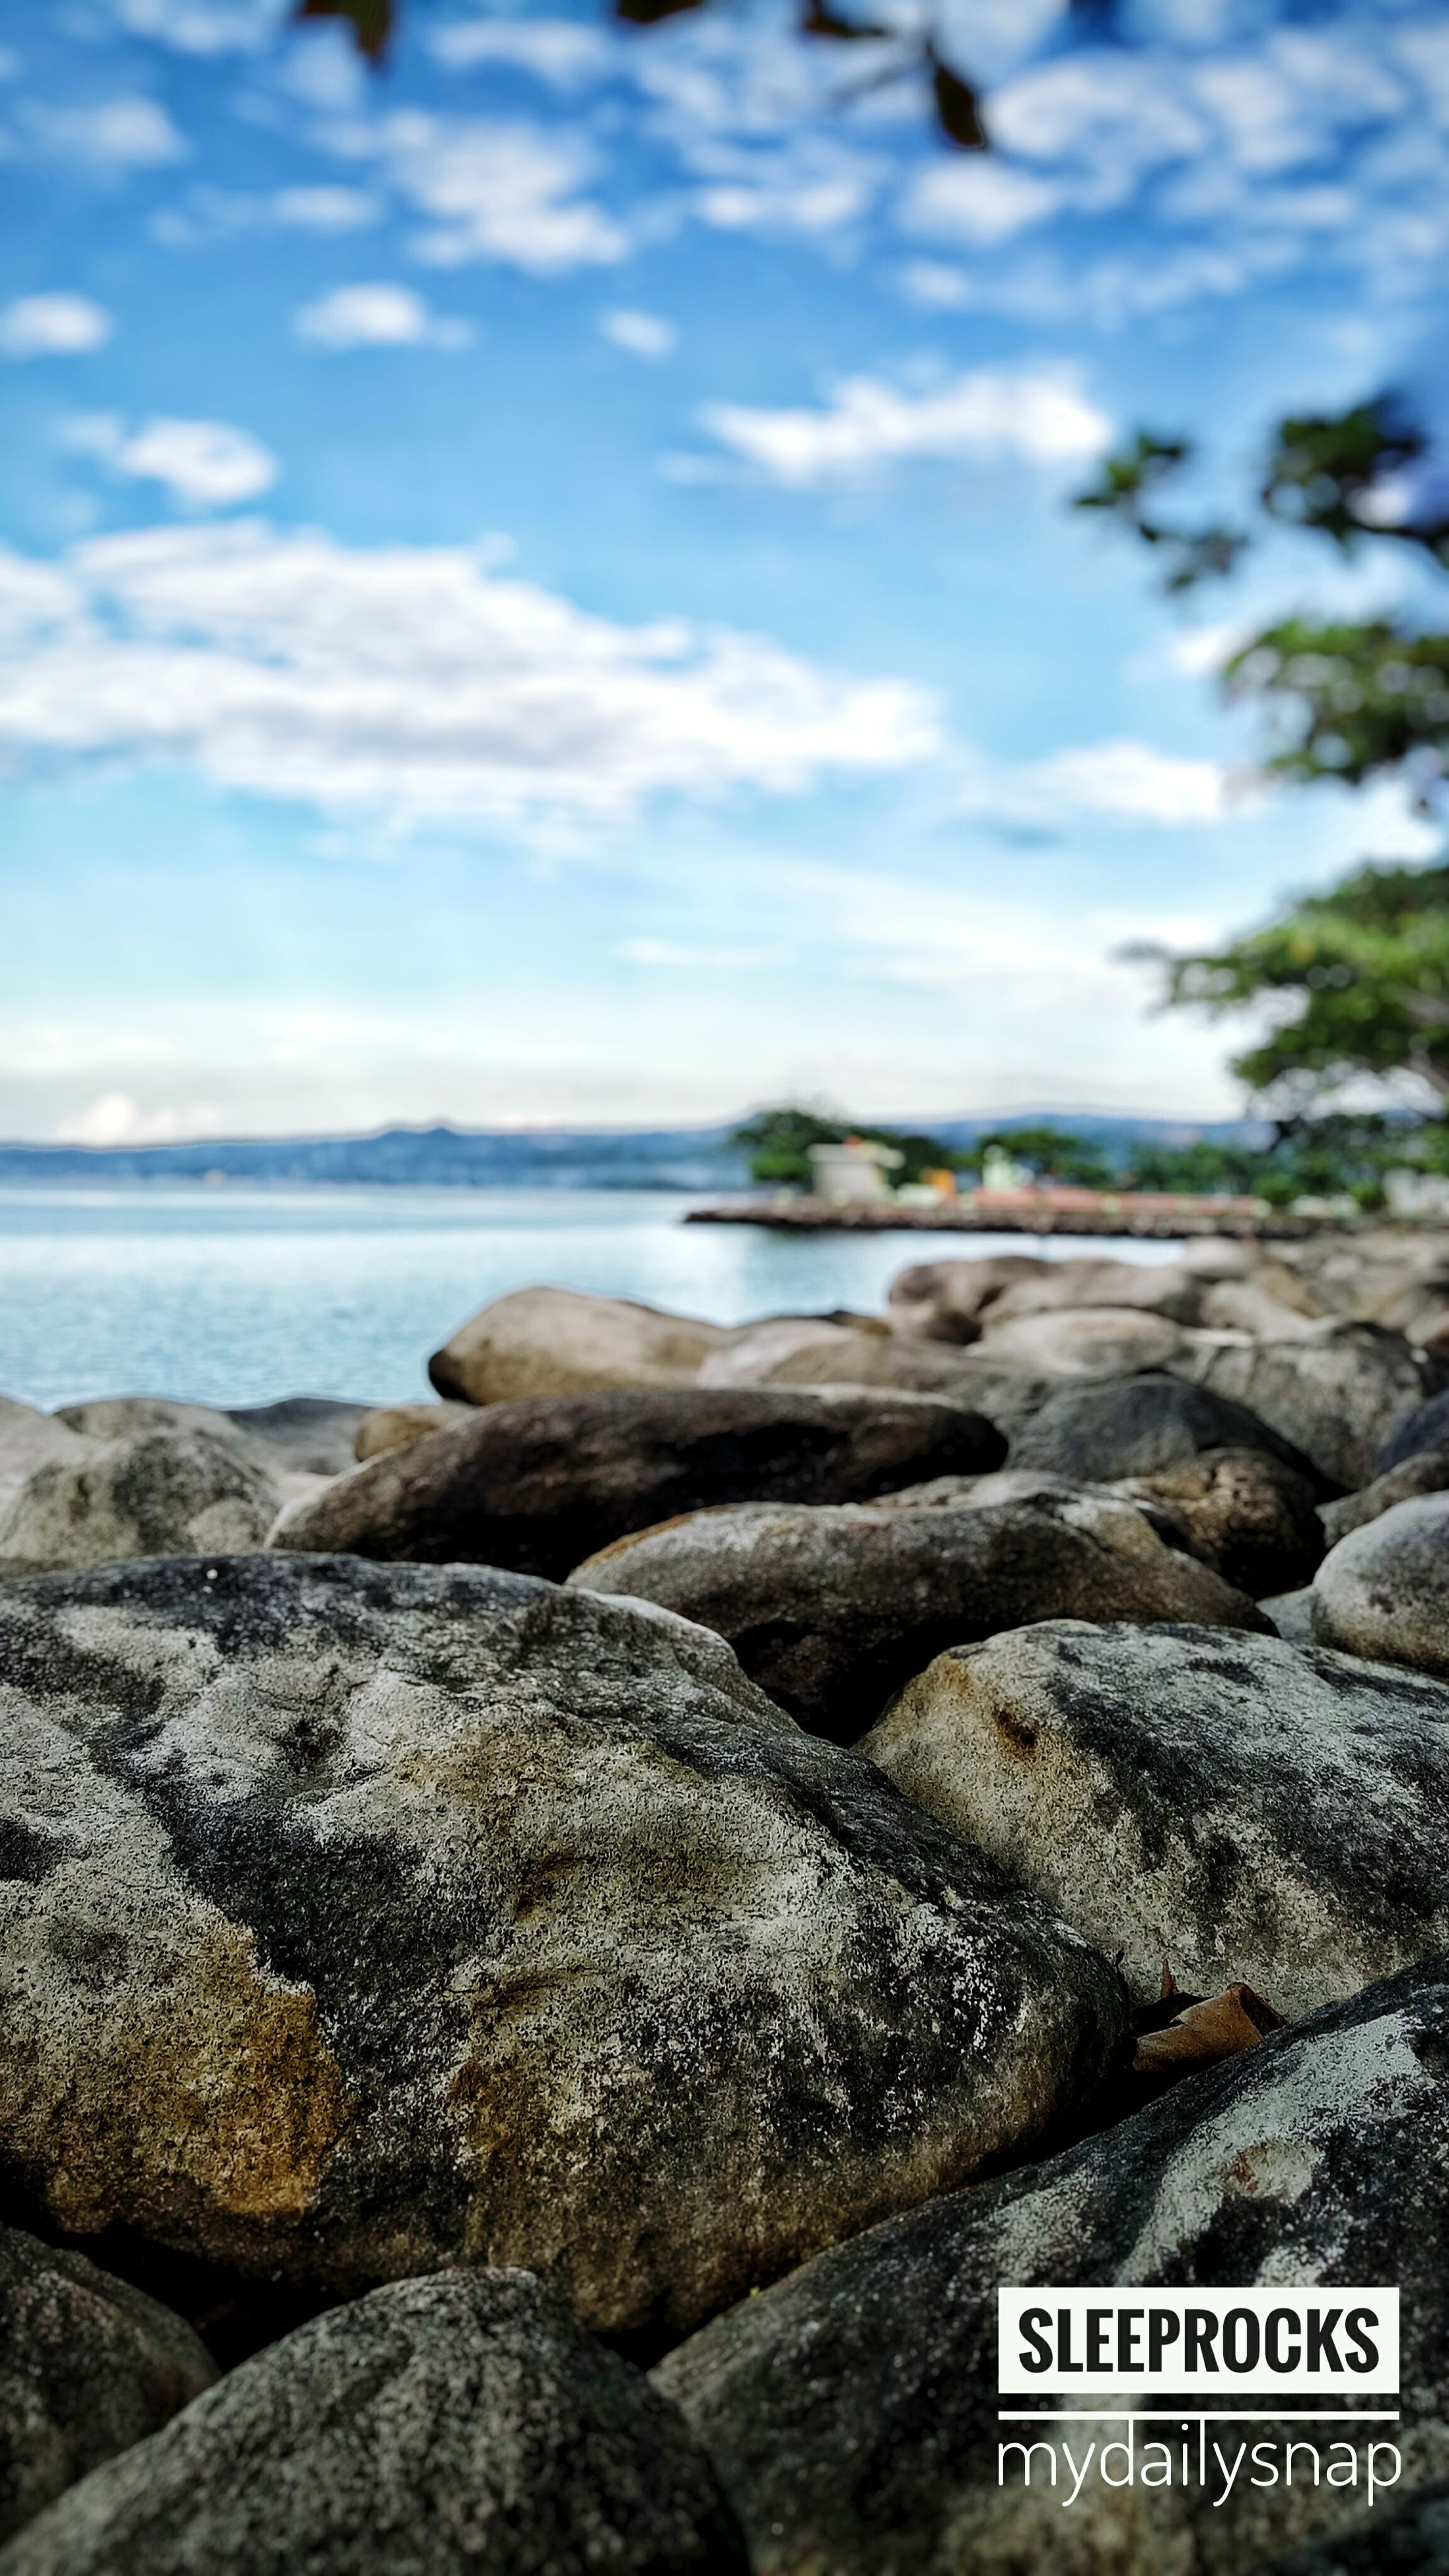 sea, sky, nature, beach, water, tranquil scene, tranquility, day, no people, beauty in nature, outdoors, scenics